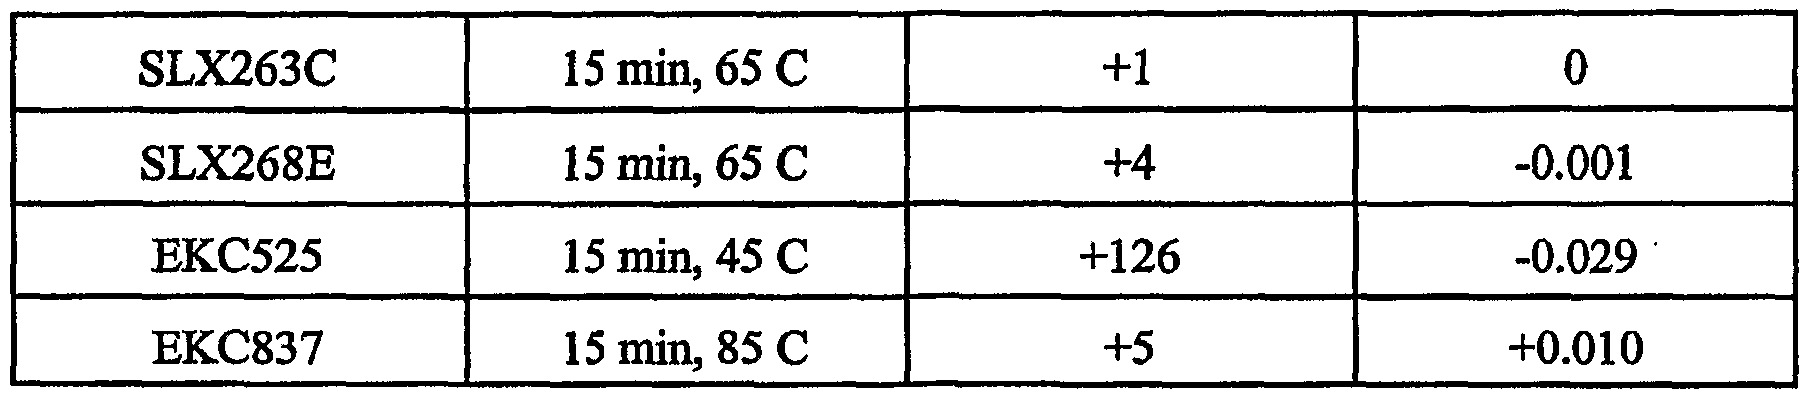 WO2003091376A1 - Oxalic acid as a cleaning product for